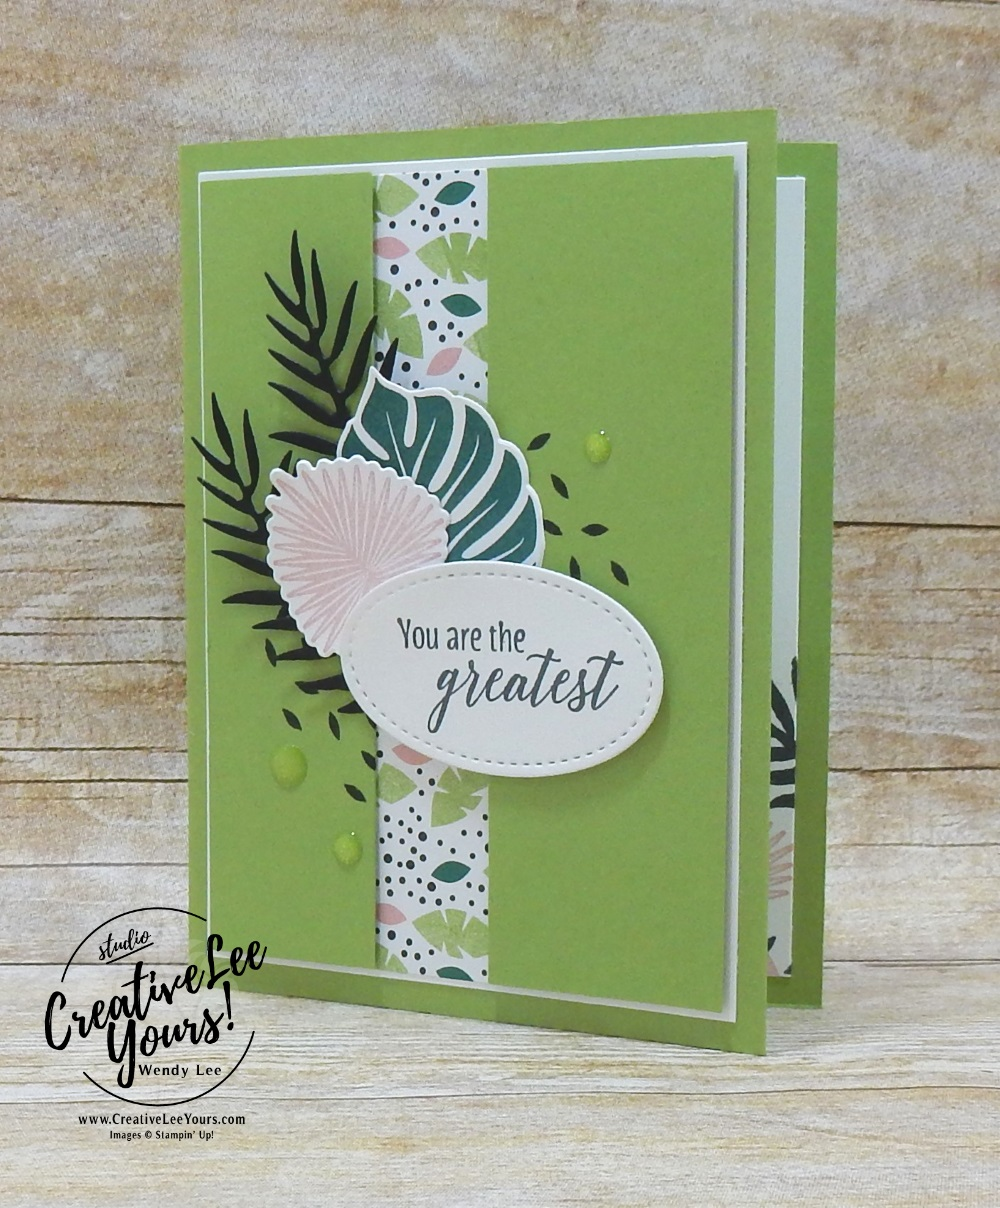 You Are The Greatest by wendy lee, Printable Tutorial, cardmaking, handmade card, rubber stamps, stamping, stampin up, wendy Lee, #creativeleeyours, creatively yours, creative-lee yours, SU, SU cards, birthday, tropical chic stamp set, diemonds team swap, thank you, friend